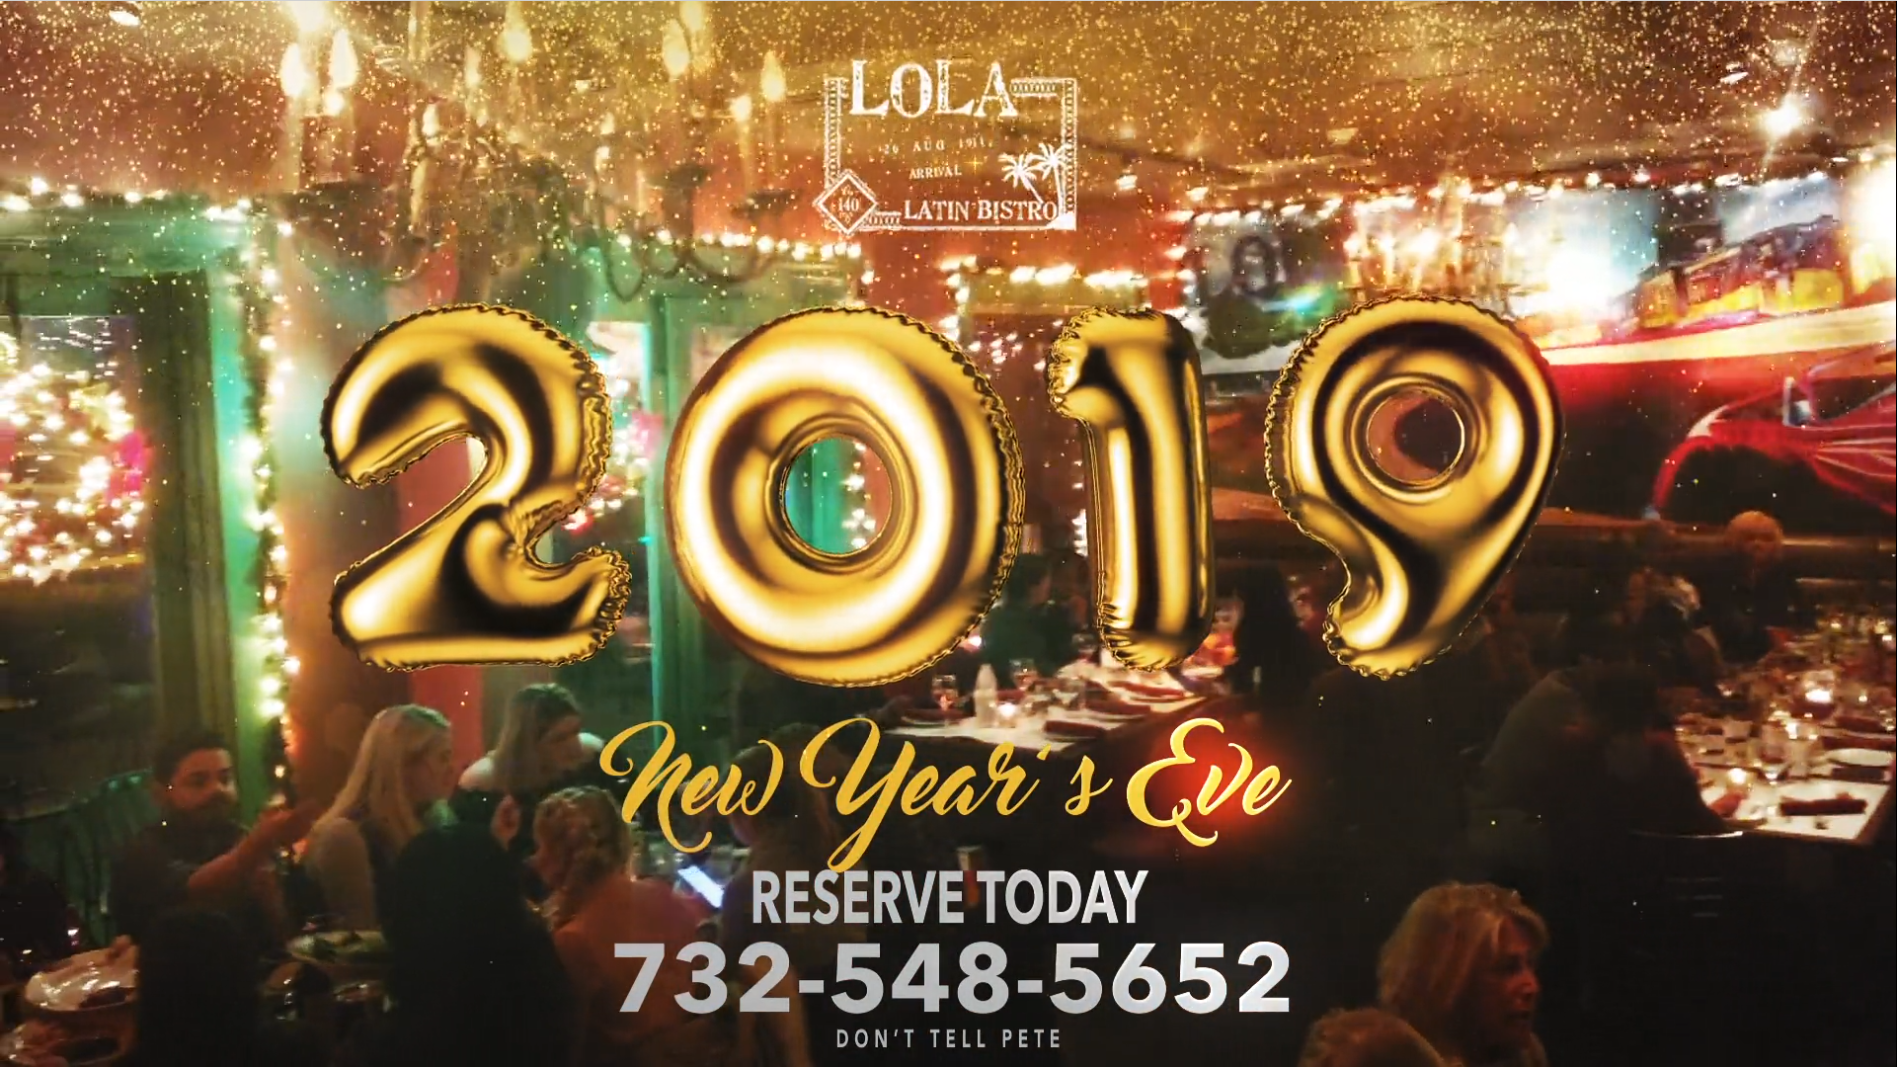 Celebrate a Happy New Year's 2019 at Lola – Reserve Today